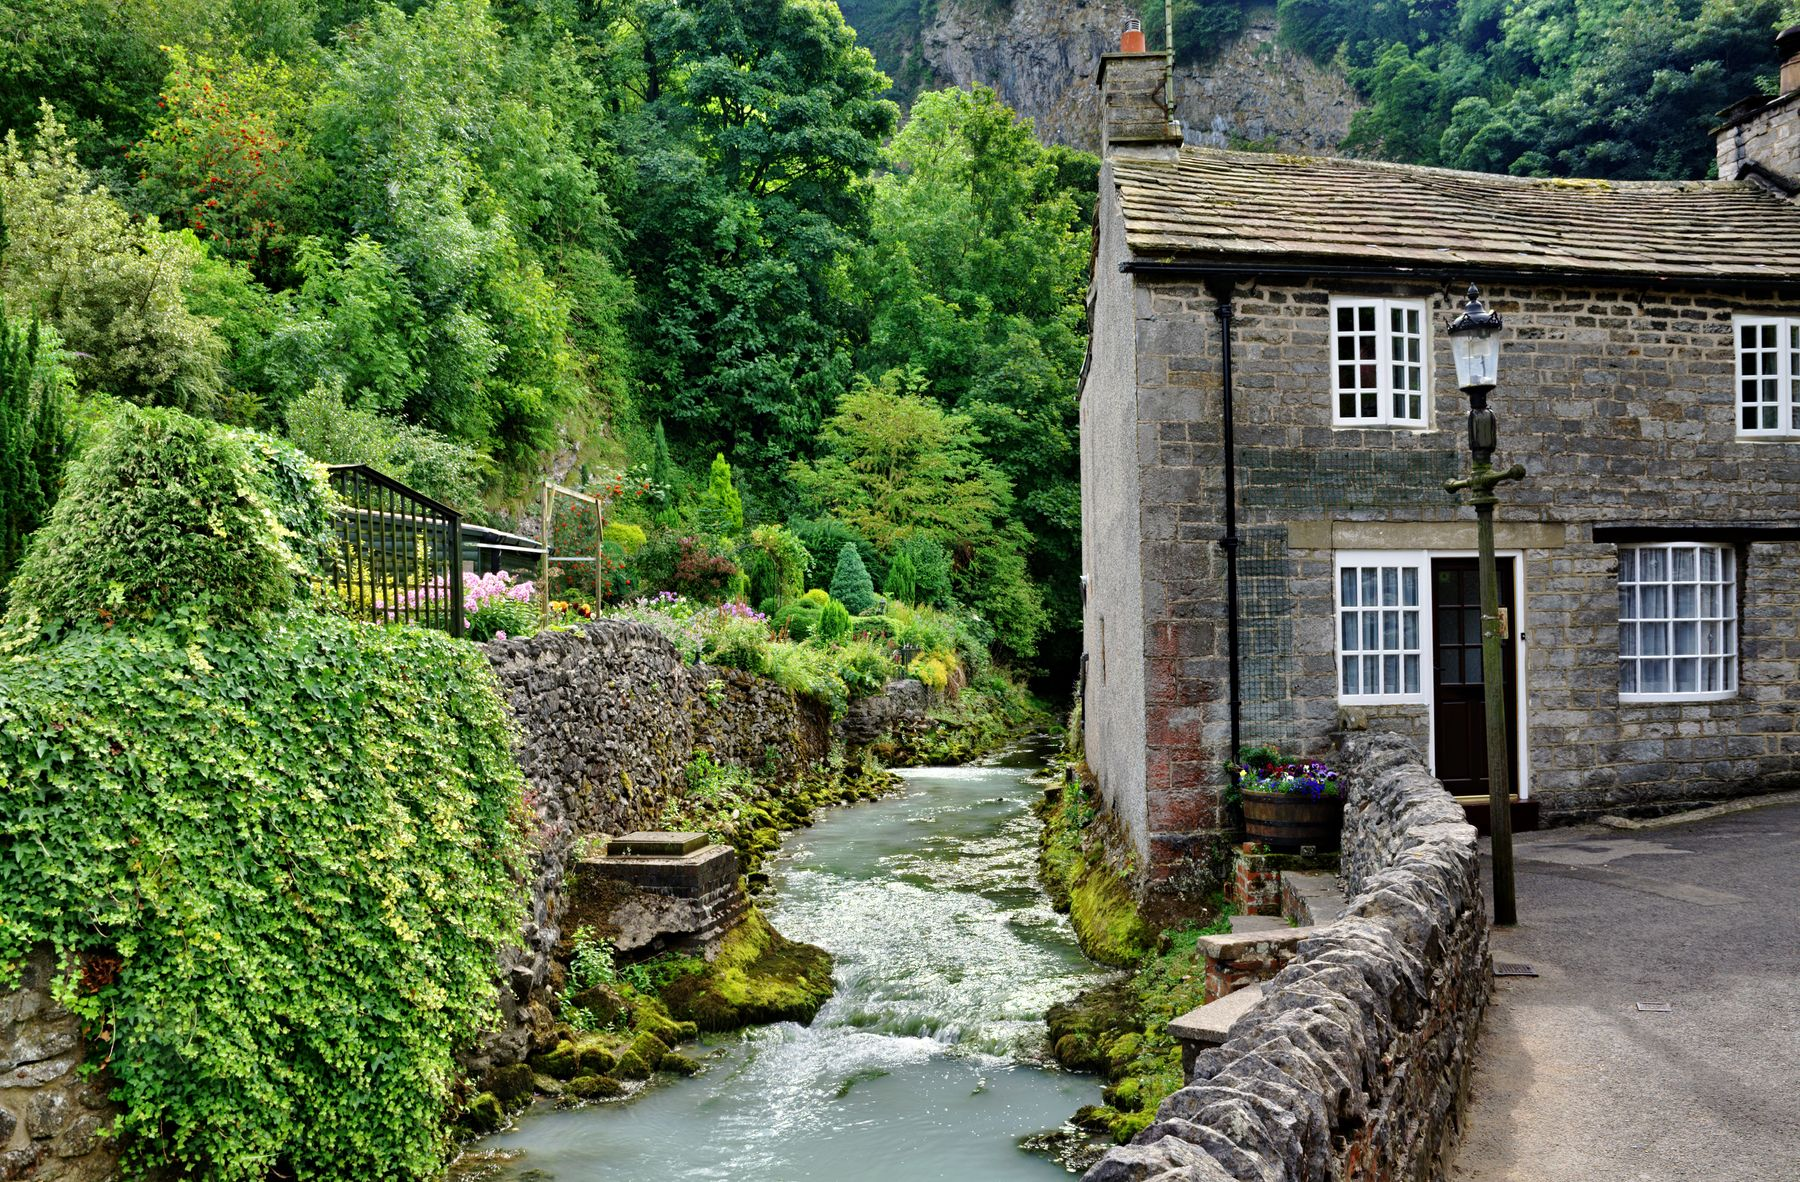 Castleton is one of many pretty mining villages in England